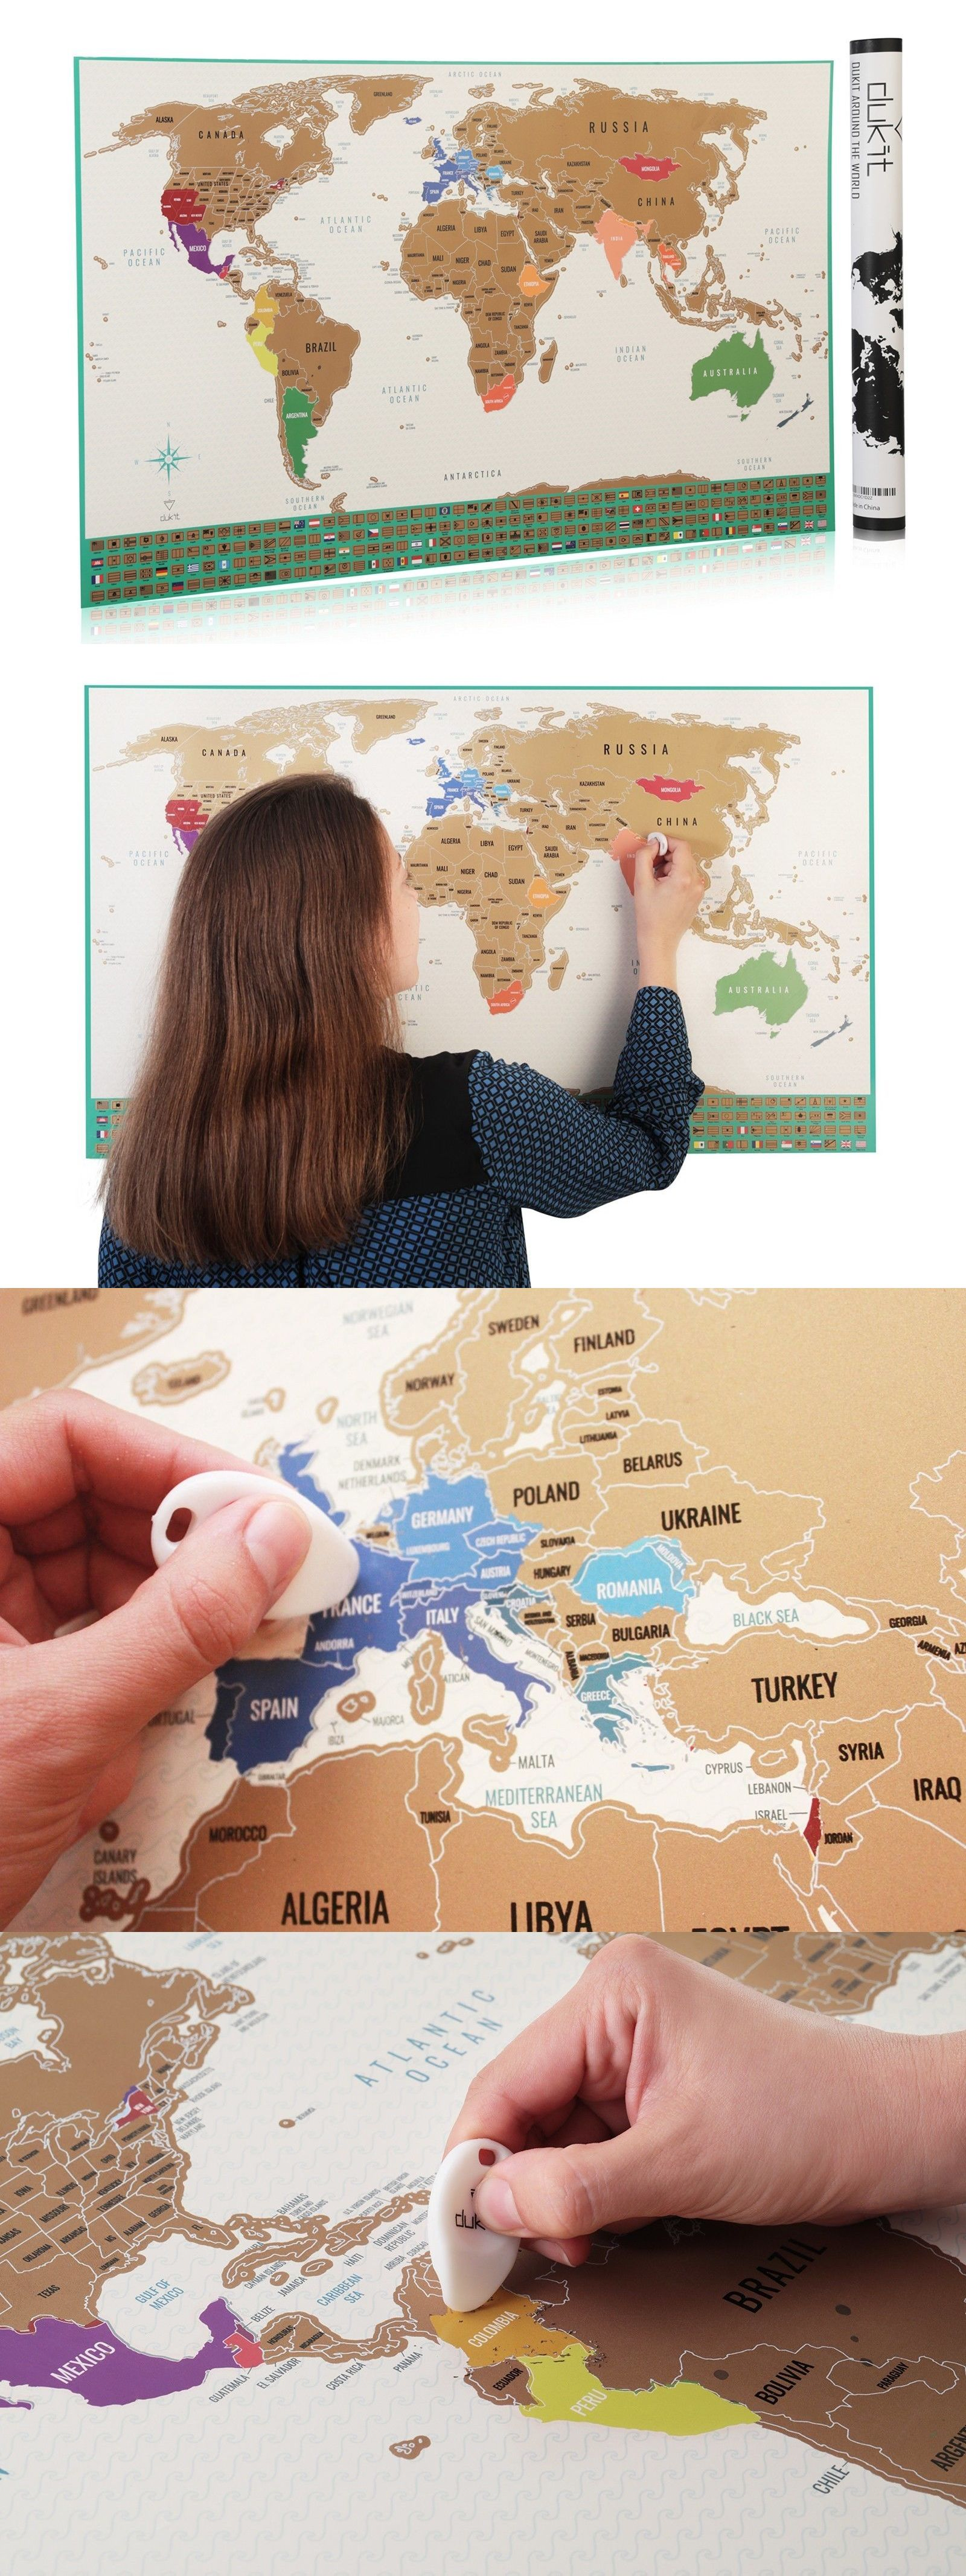 Other travel maps 164807 travel edition scratch off world map other travel maps 164807 travel edition scratch off world map poster personalized journal log deluxe gumiabroncs Images